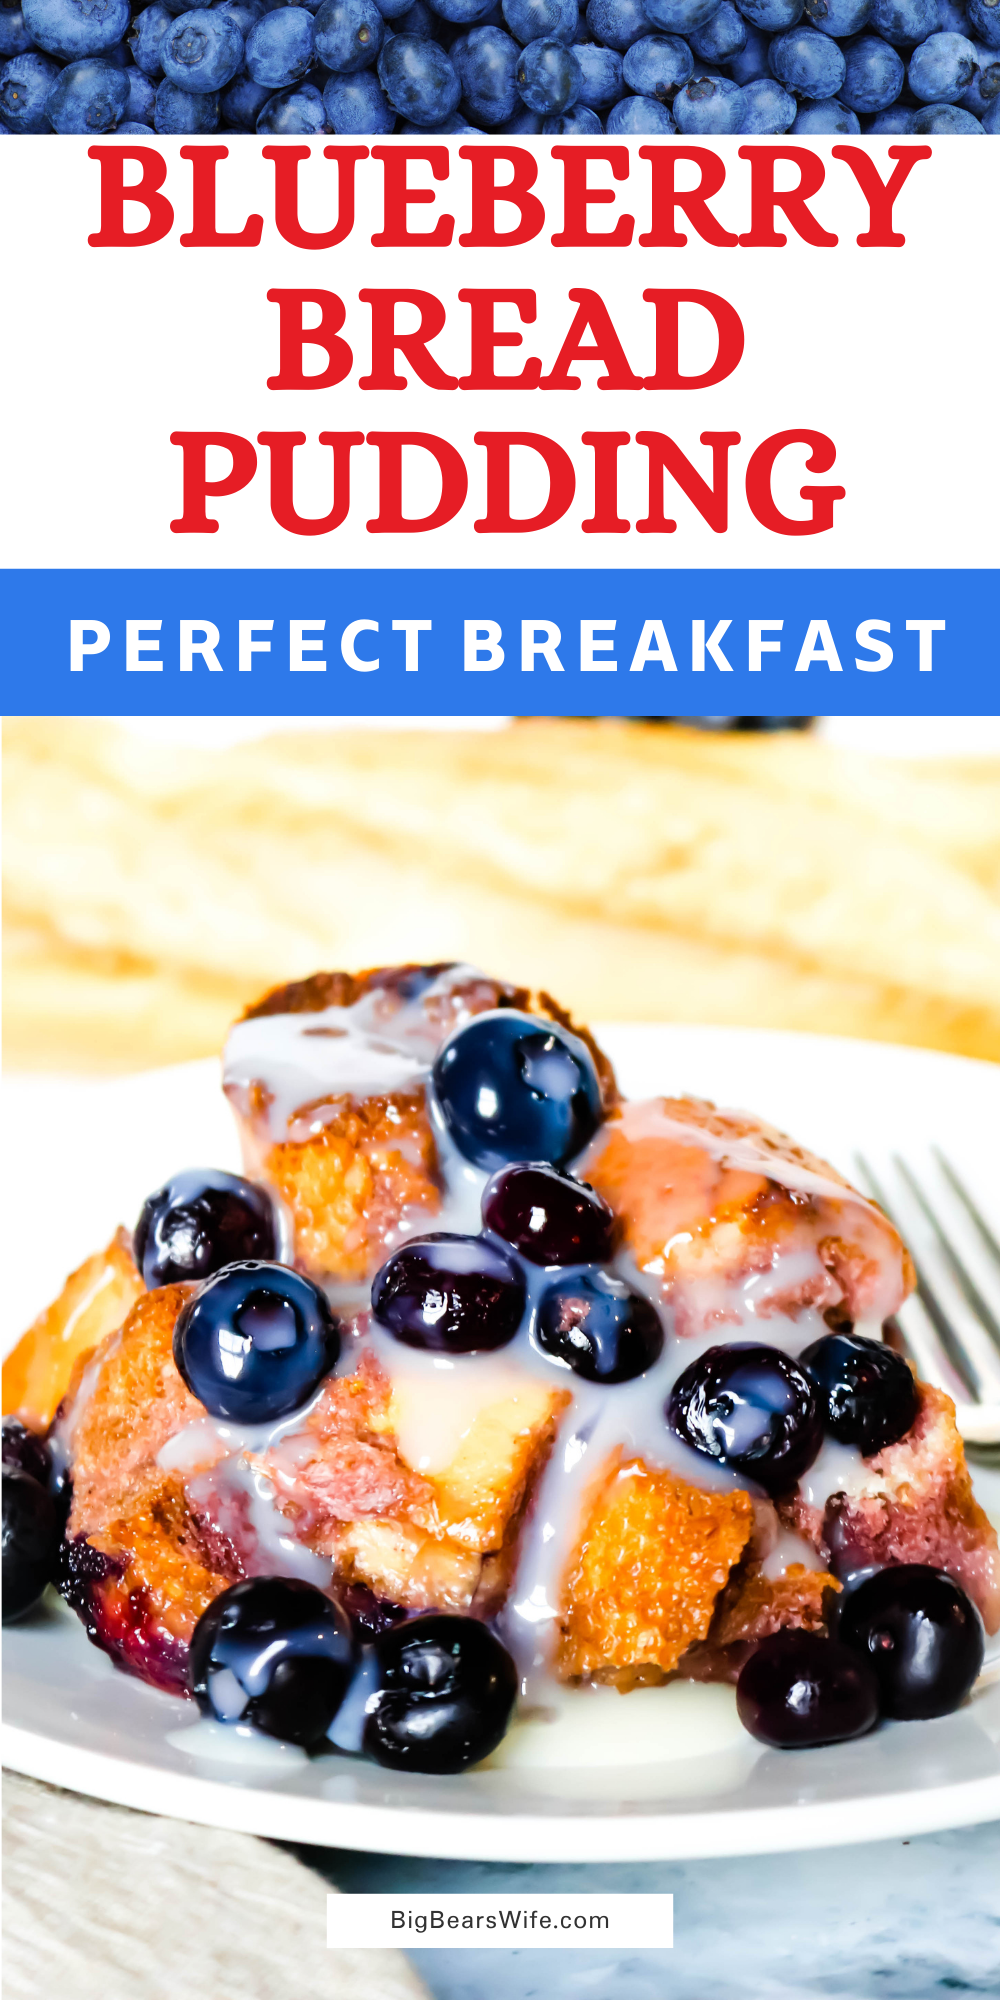 This Blueberry Bread Pudding is the perfect overnight make ahead recipe for breakfast or brunch! It's easy to toss together, hangs out in the fridge and then it's ready to bake the next morning! via @bigbearswife